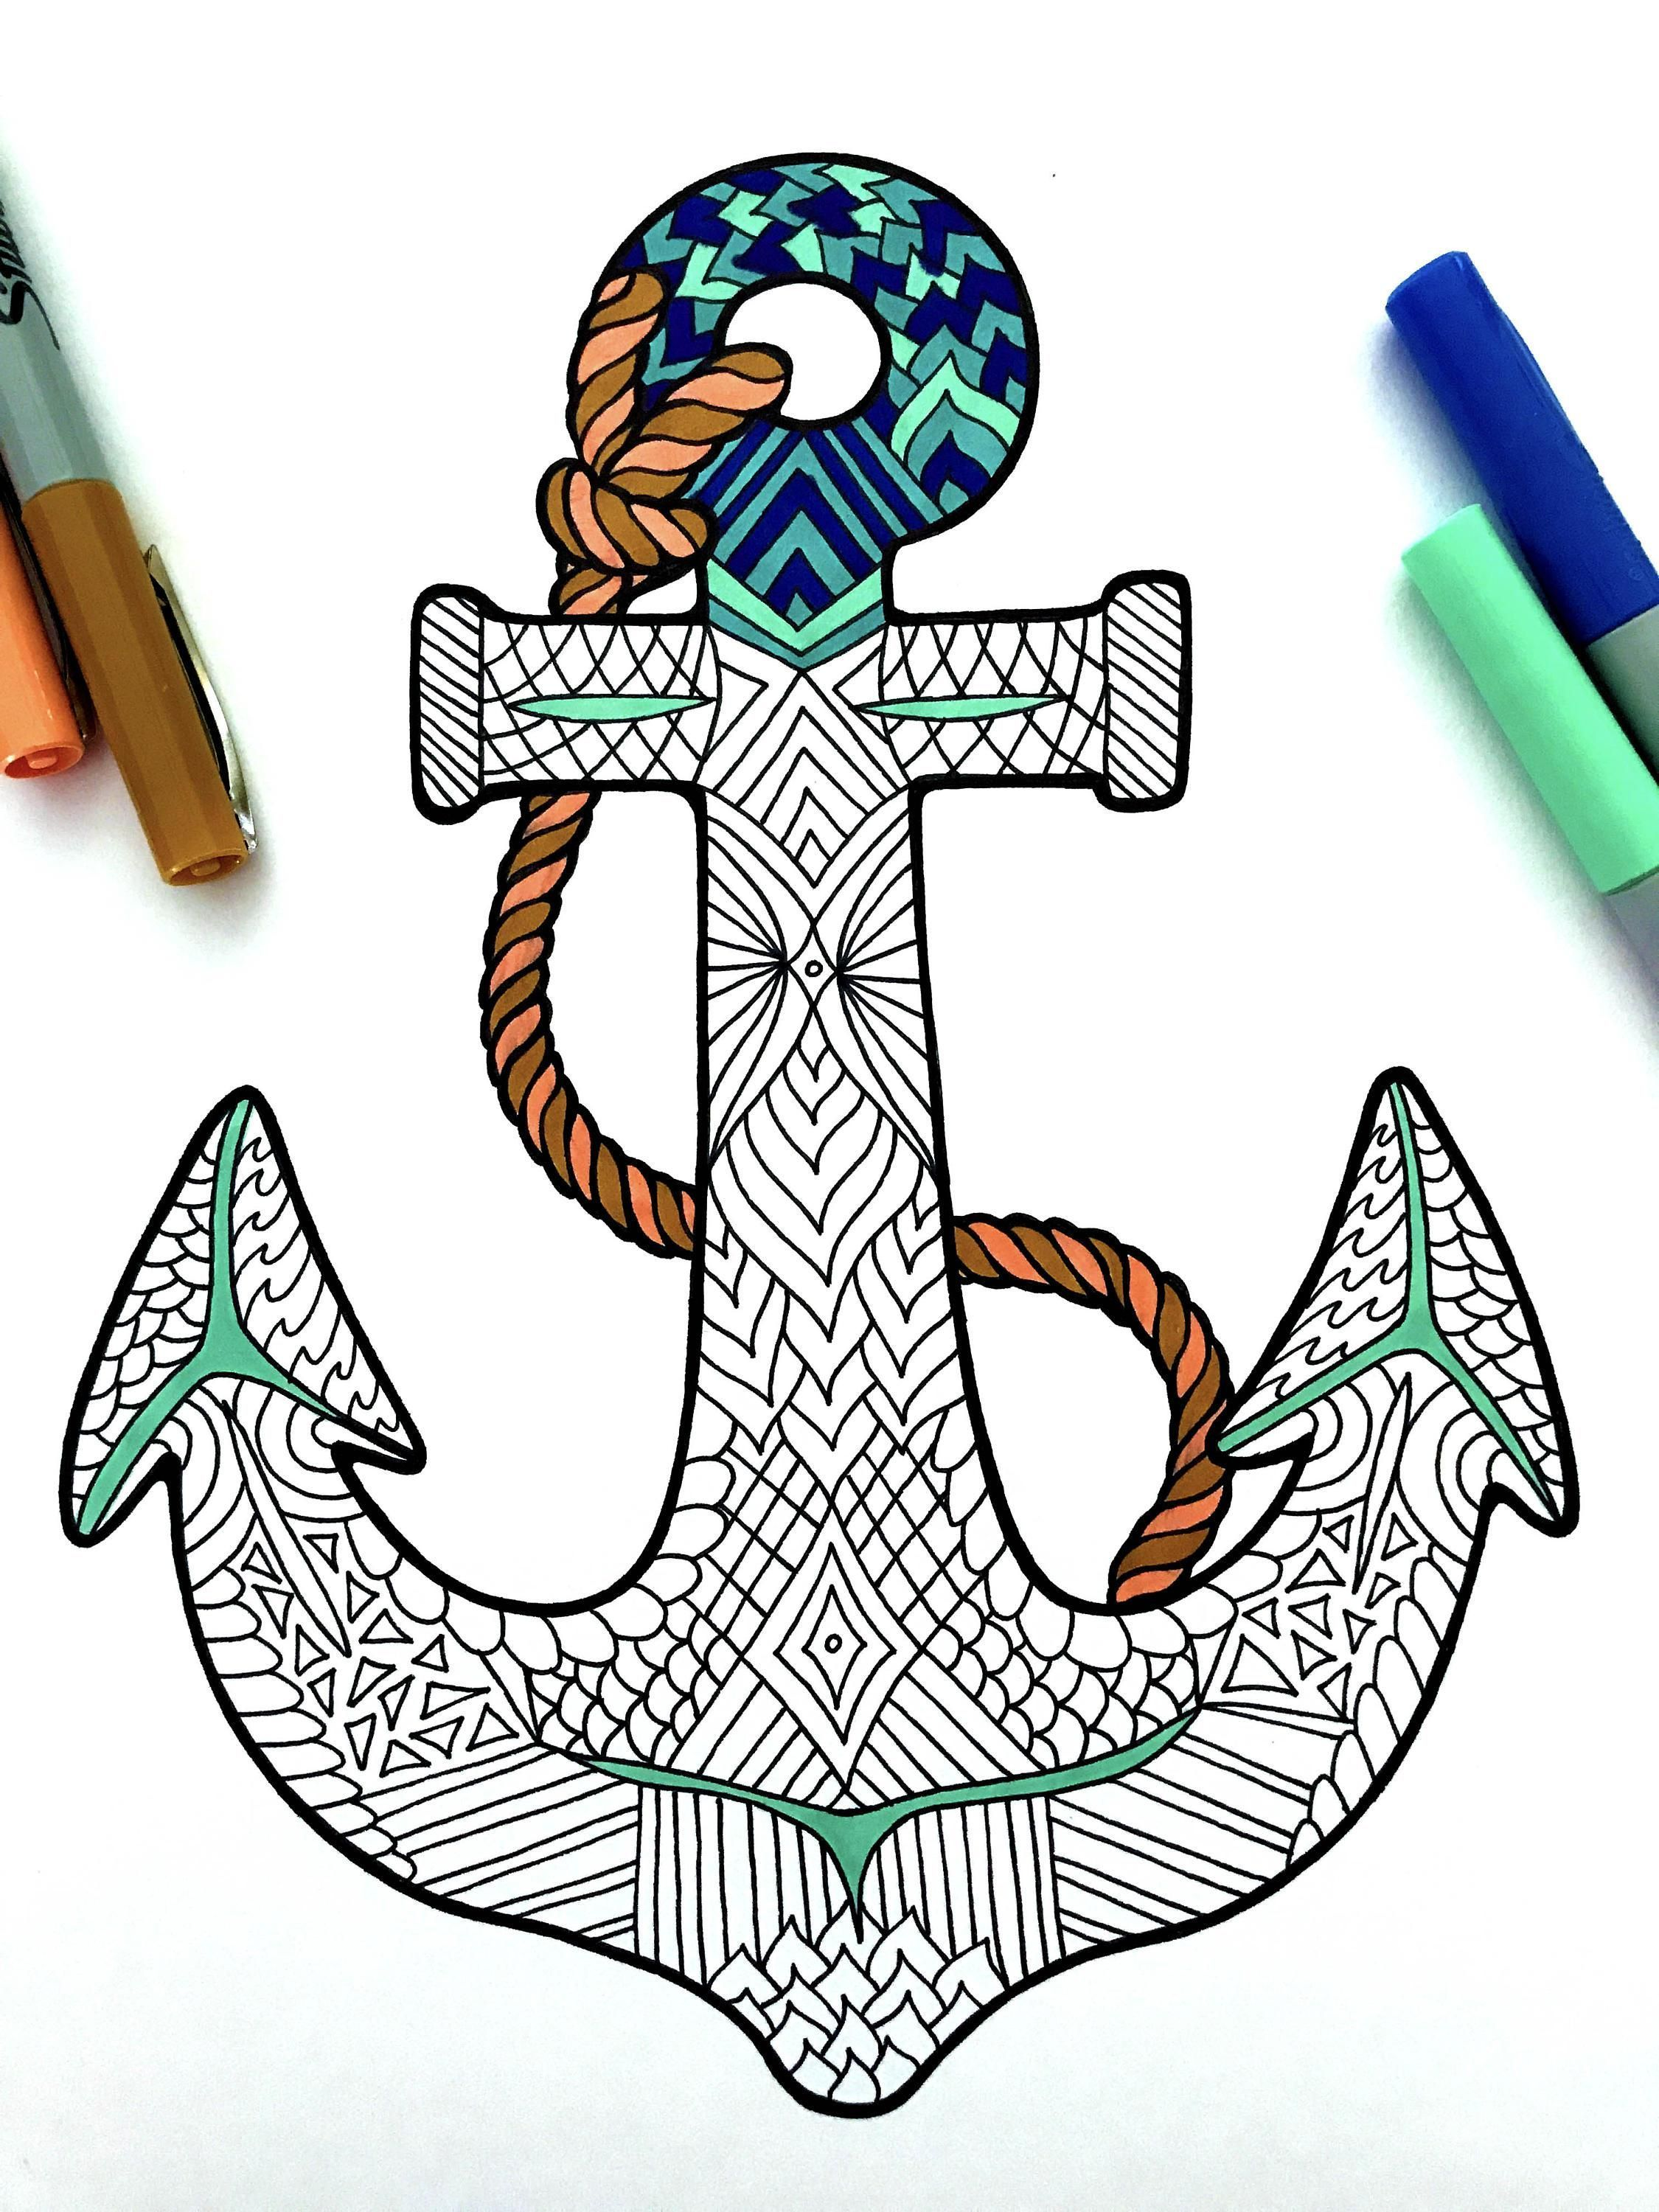 Arte Naif Pdf Anchor Pdf Zentangle Coloring Page Lettering Vectoriales Y